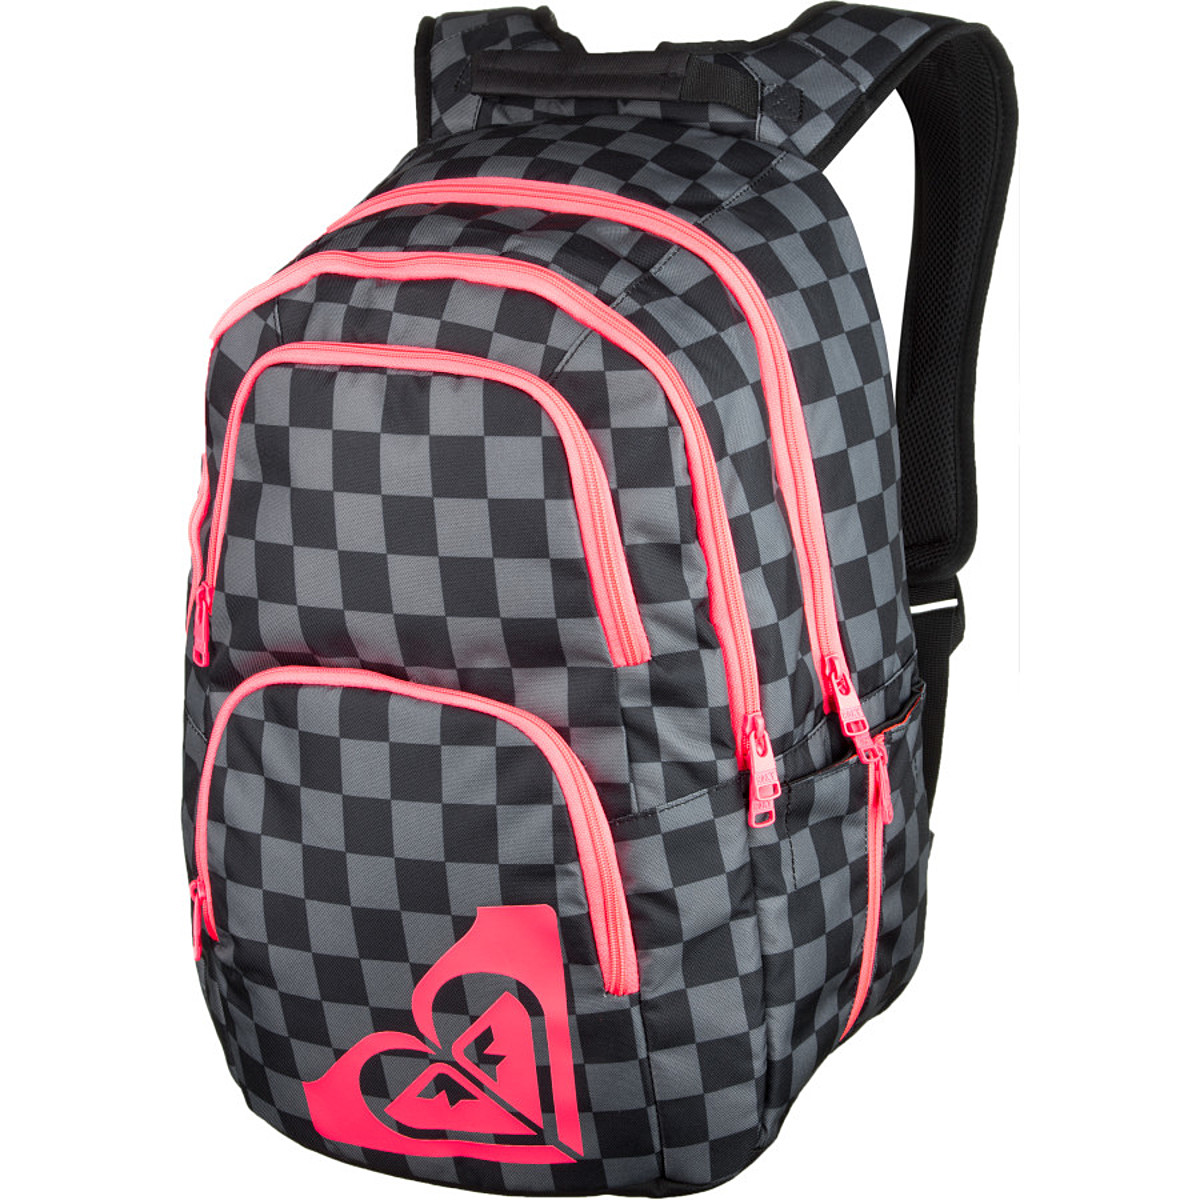 photo of a Roxy backpack